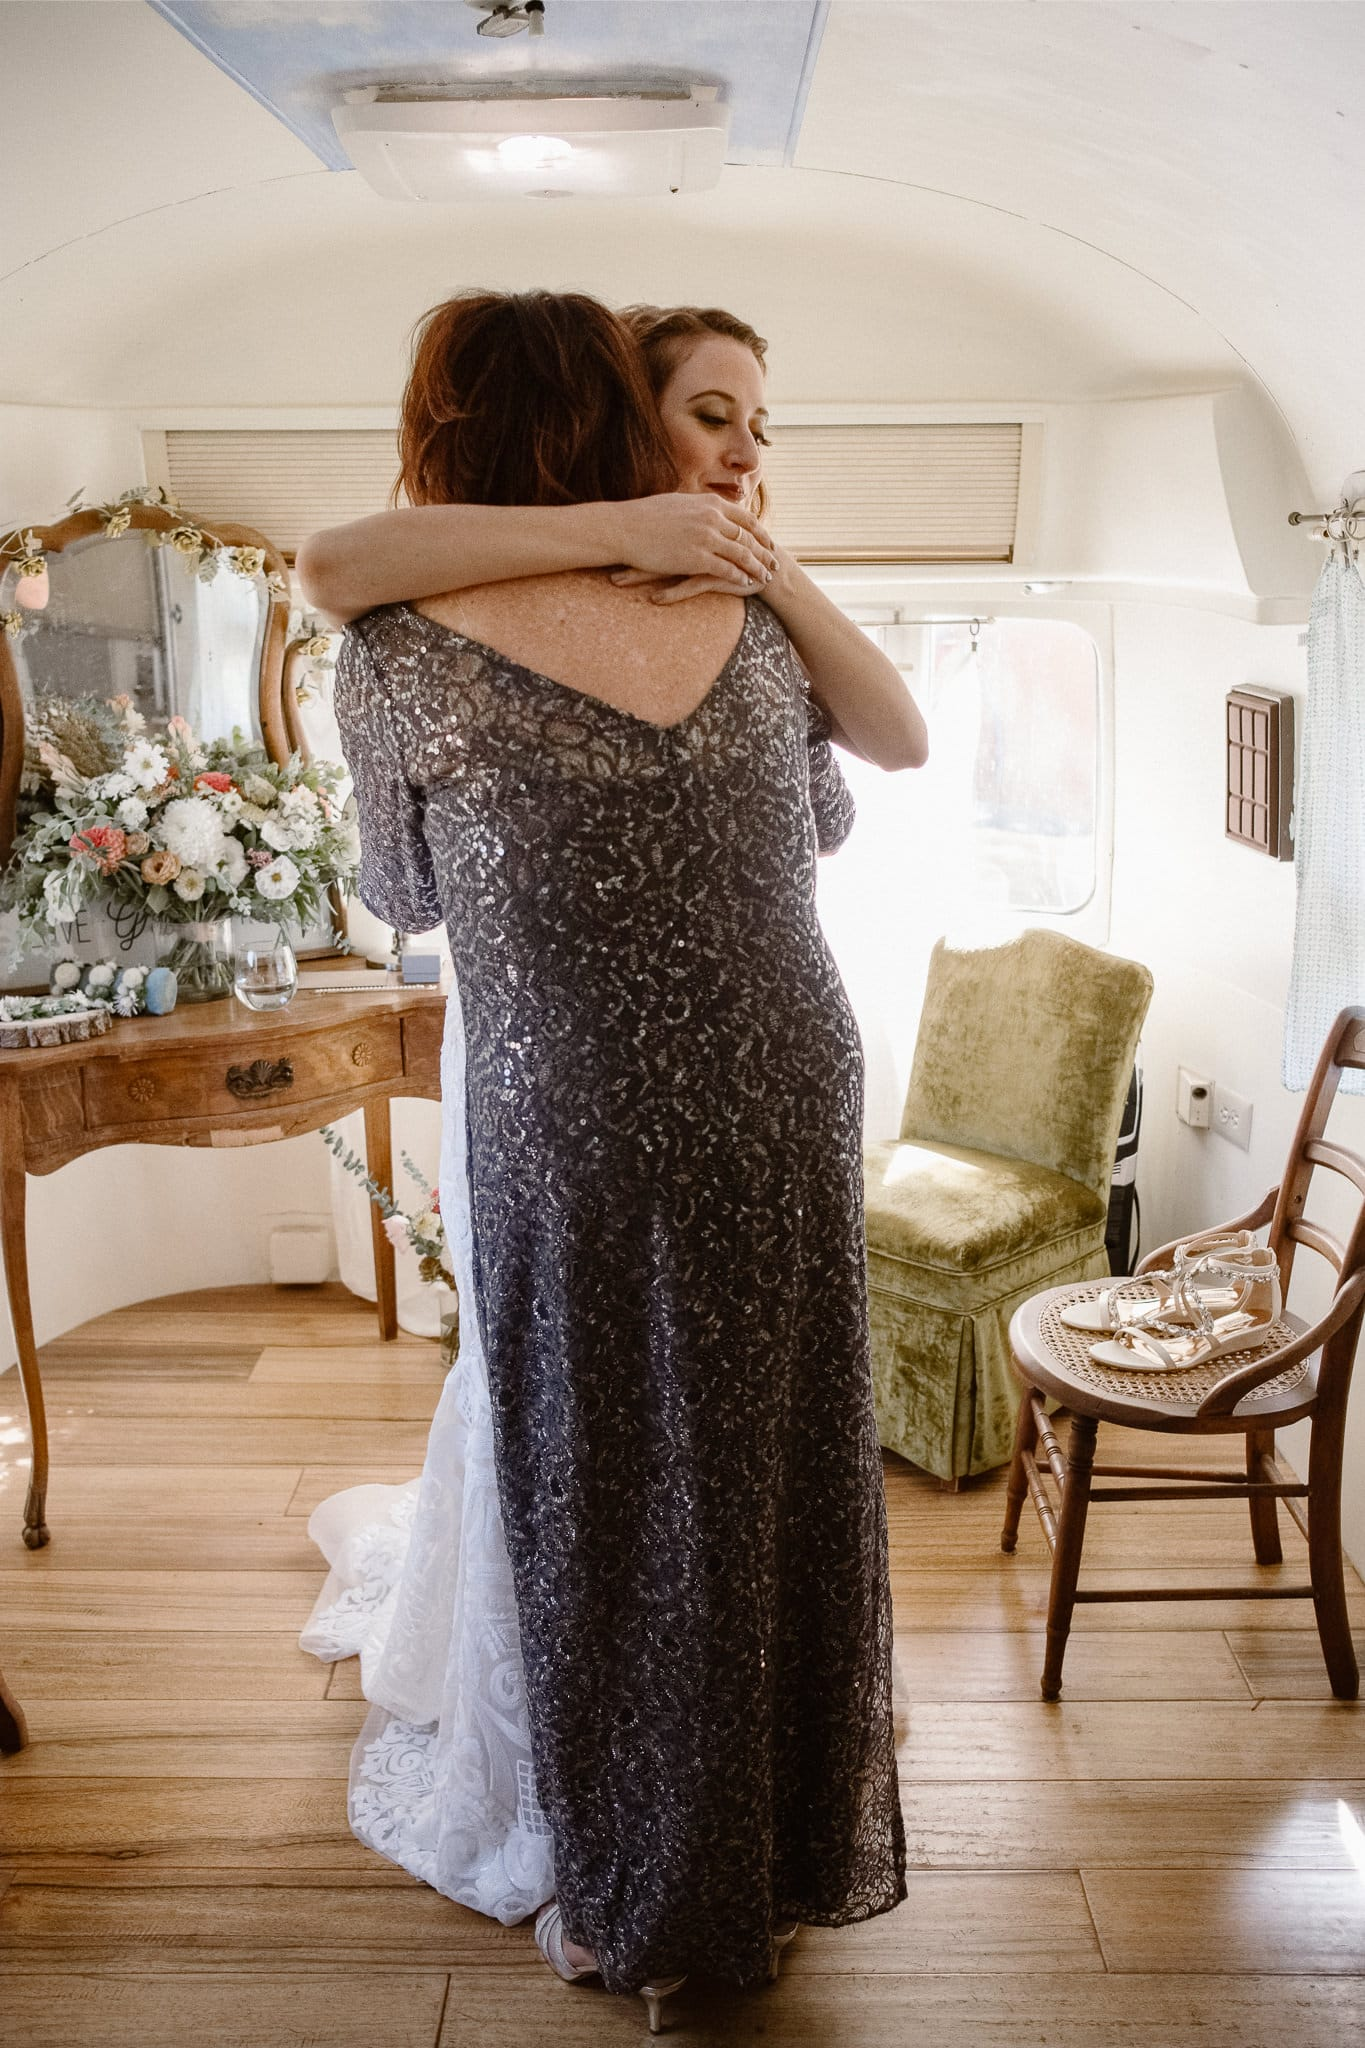 Lyons Farmette wedding photographer, Colorado intimate wedding photographer, bride getting ready in airstream, rue de seine wedding dress, bride hugging her mom